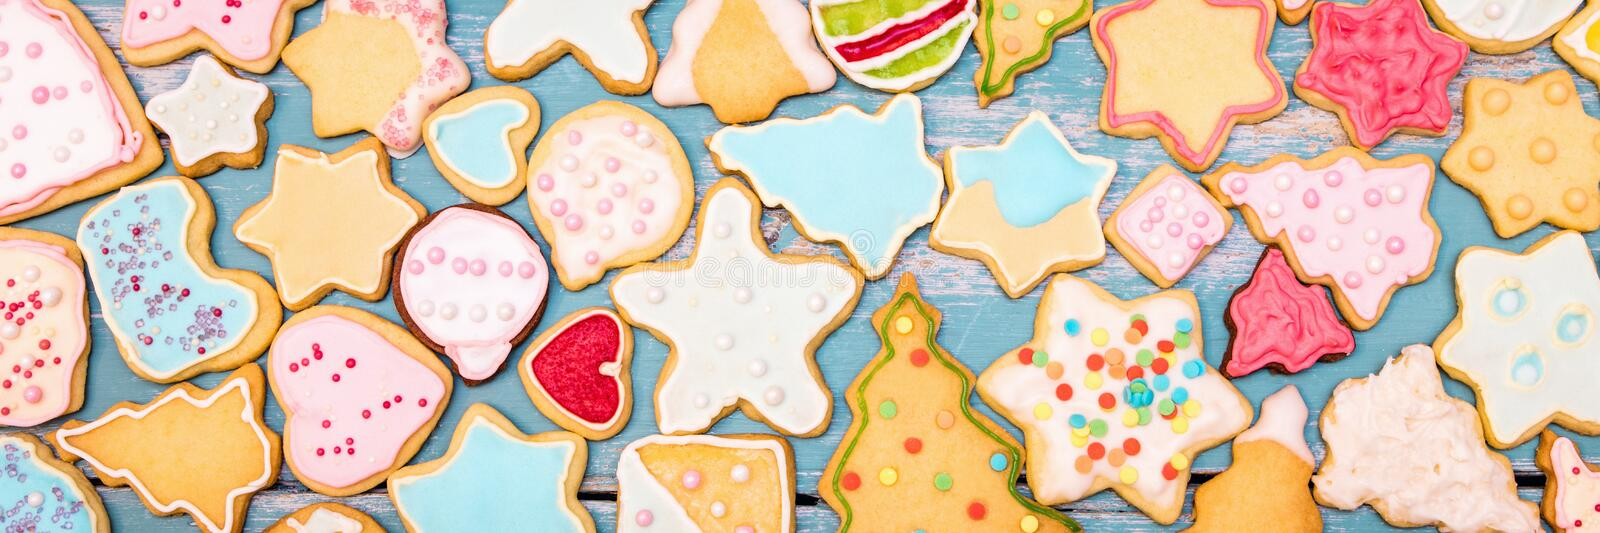 Header, colorful christmas cookies with royal icing and sugar pearls. Header, colorful christmas cookies with royal icing, frosting and sugar pearls royalty free stock photo